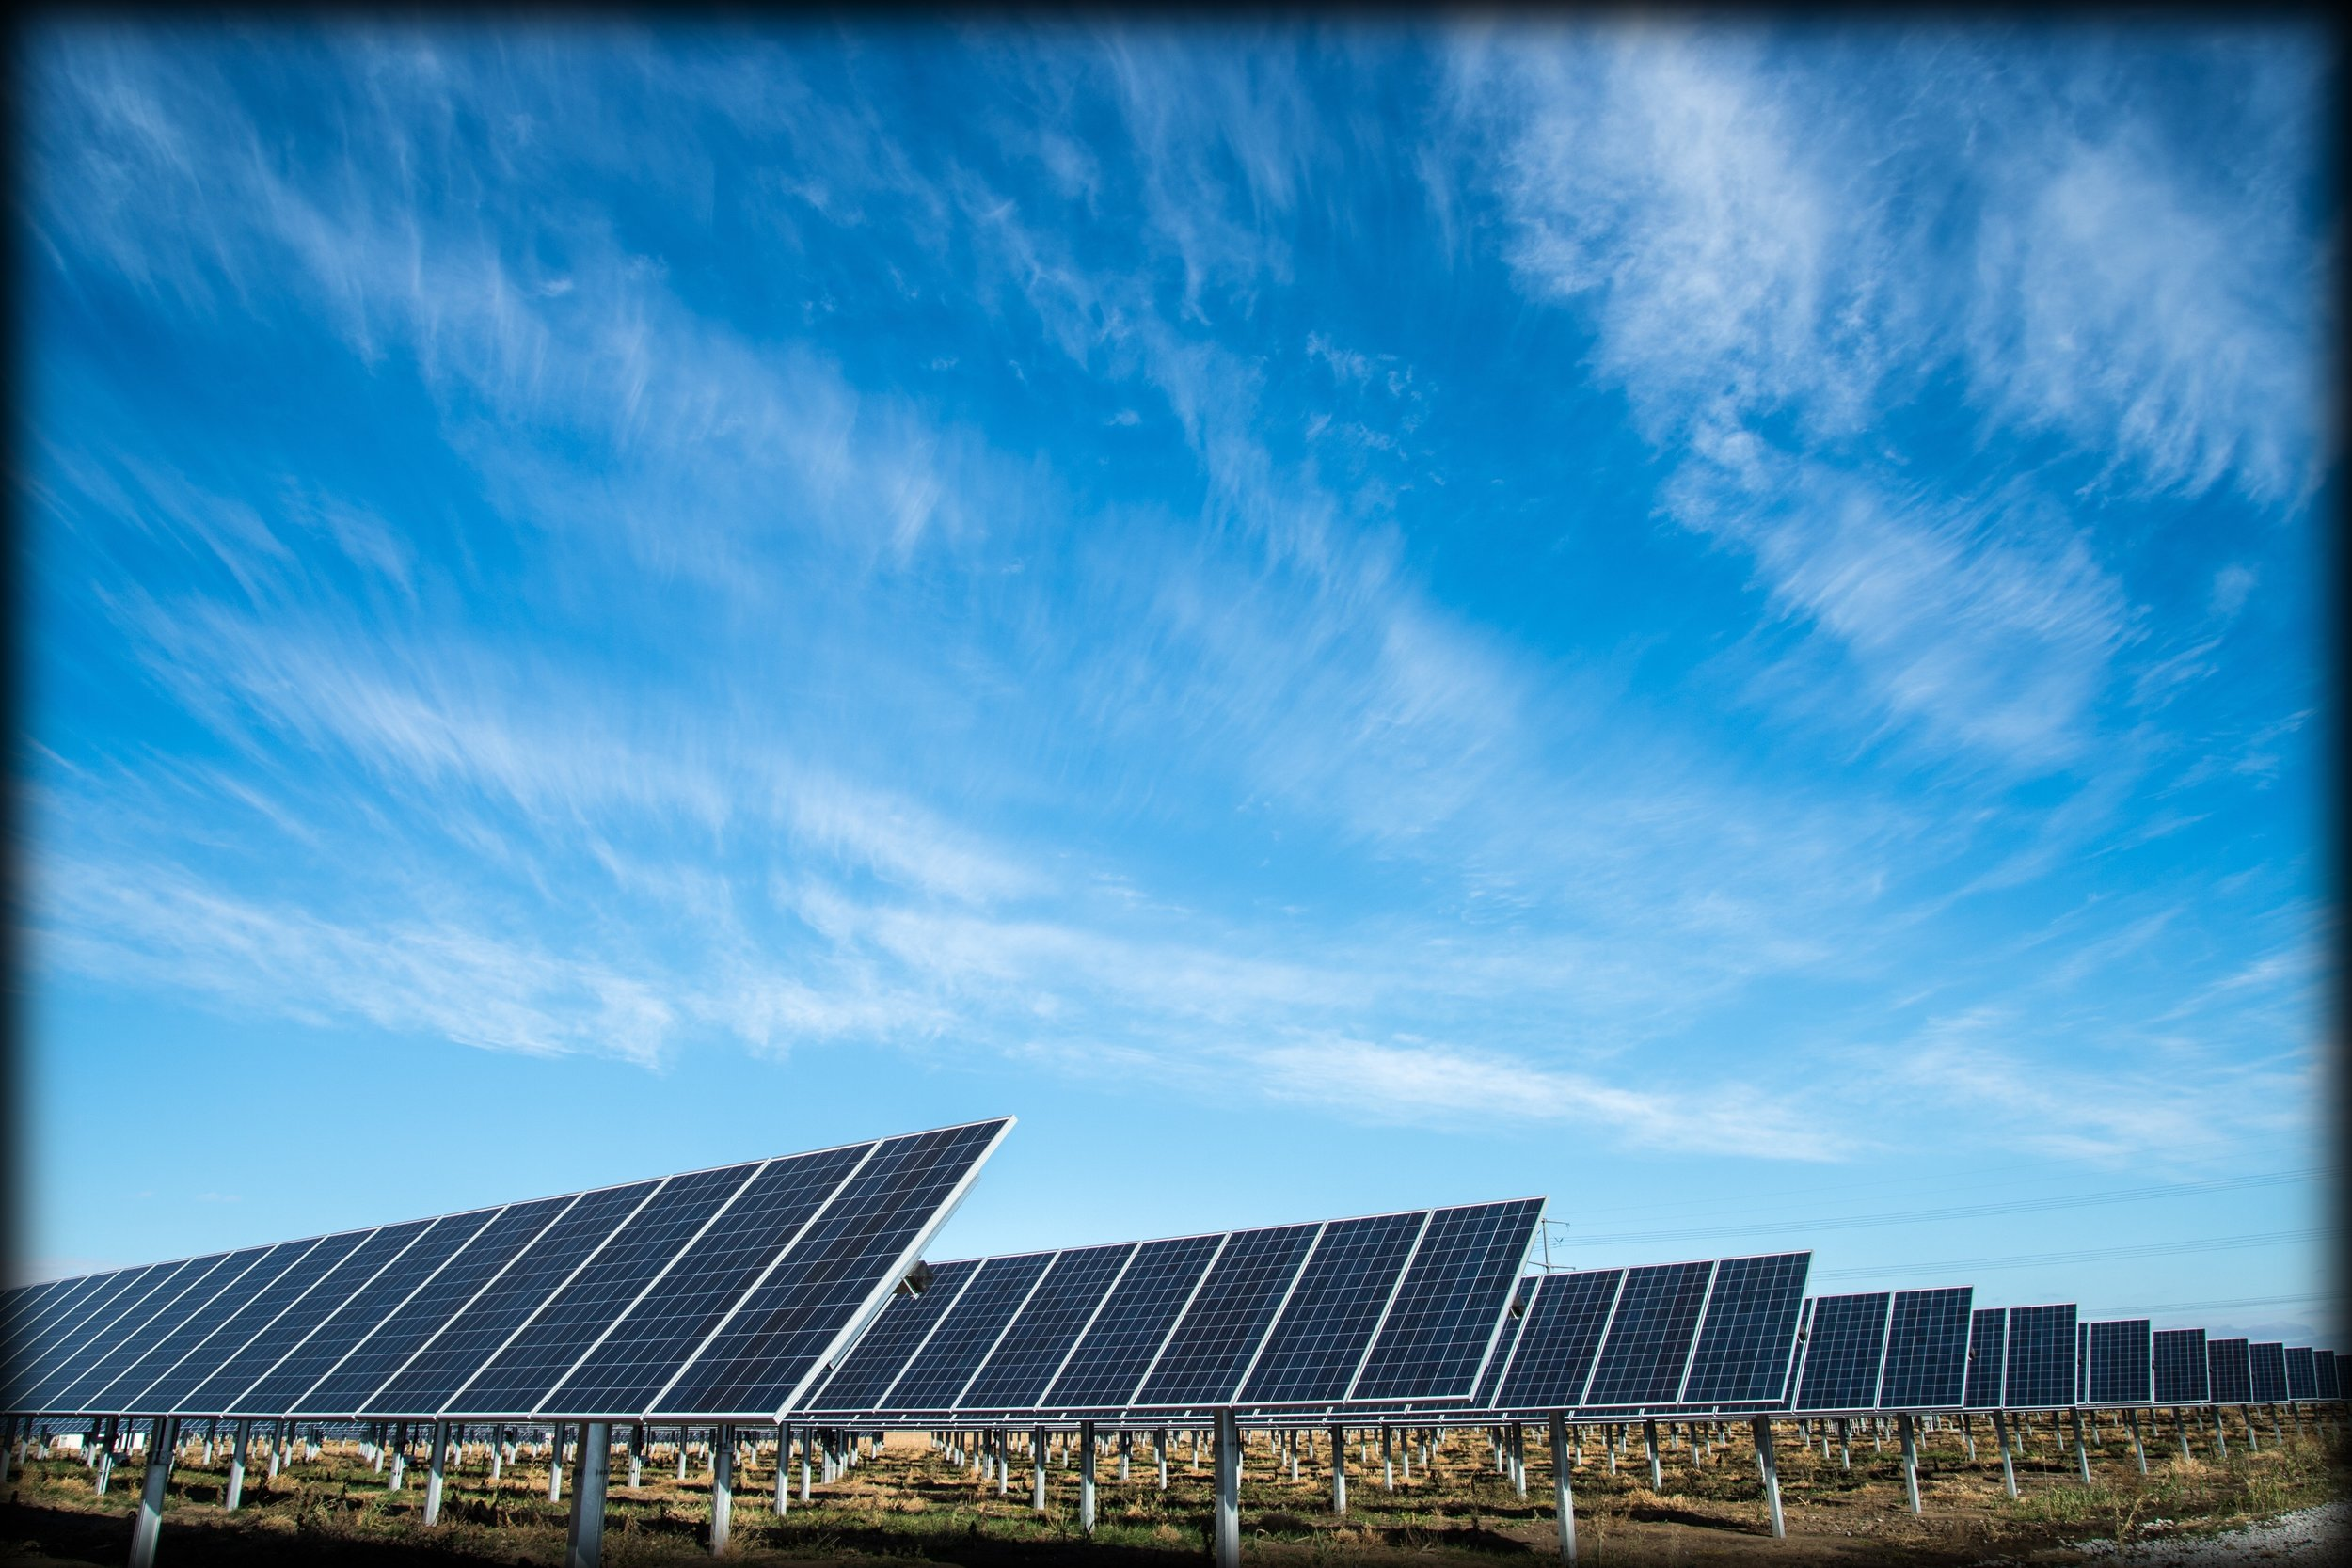 WIND AND SOLAR BACKUP POWER - The renewable energy sector often relies on dirty fossil fuel as backup power when there is no wind and the sun is not shining. With our fuel, they have cheap, clean backup power.